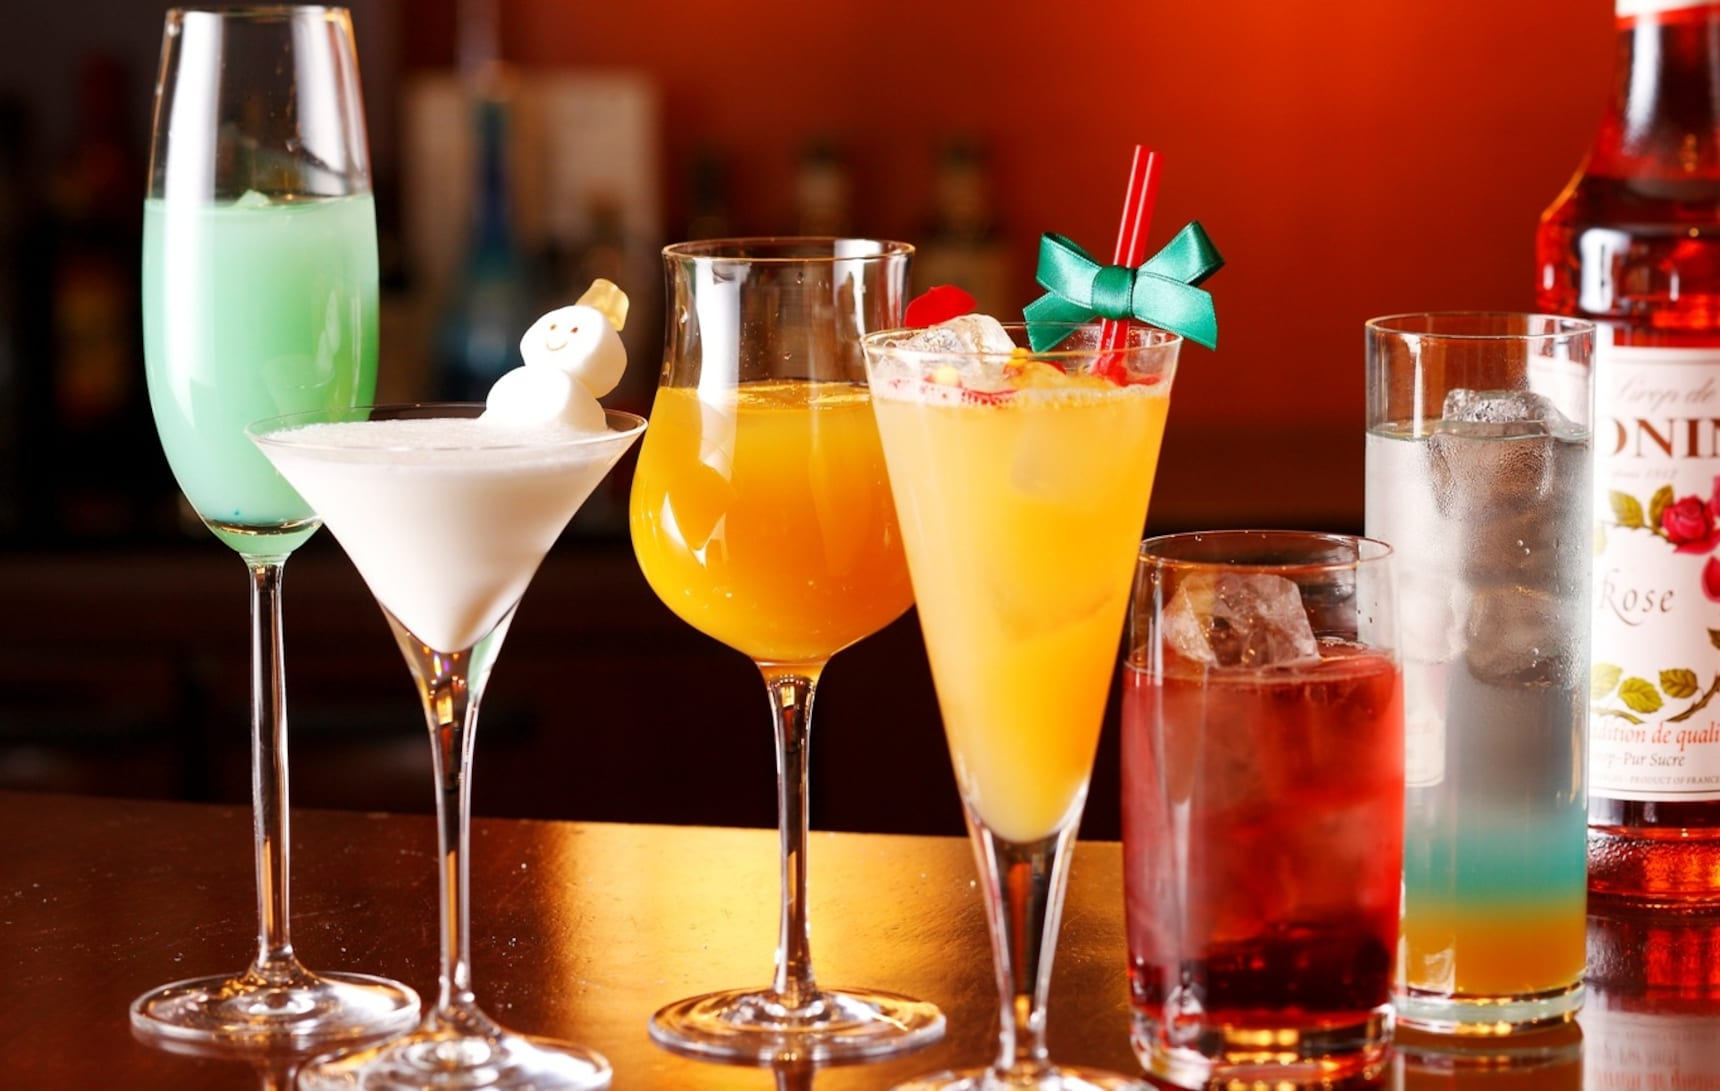 4 39 alcoholic 39 beverages with 0 alcohol all about japan for Mixed alcoholic drinks list